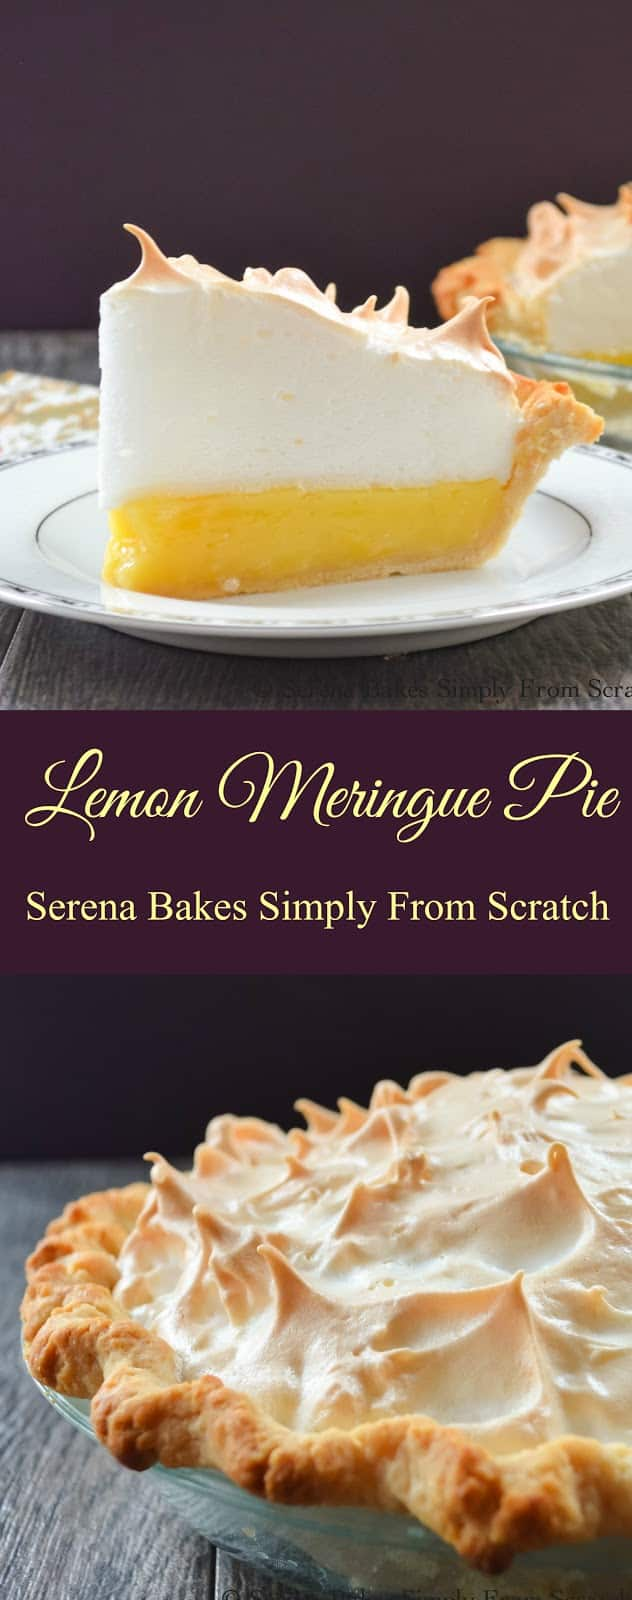 Tangy sweet Lemon Meringue Pie with an easy weep free meringue from Serena Bakes Simply From Scratch.